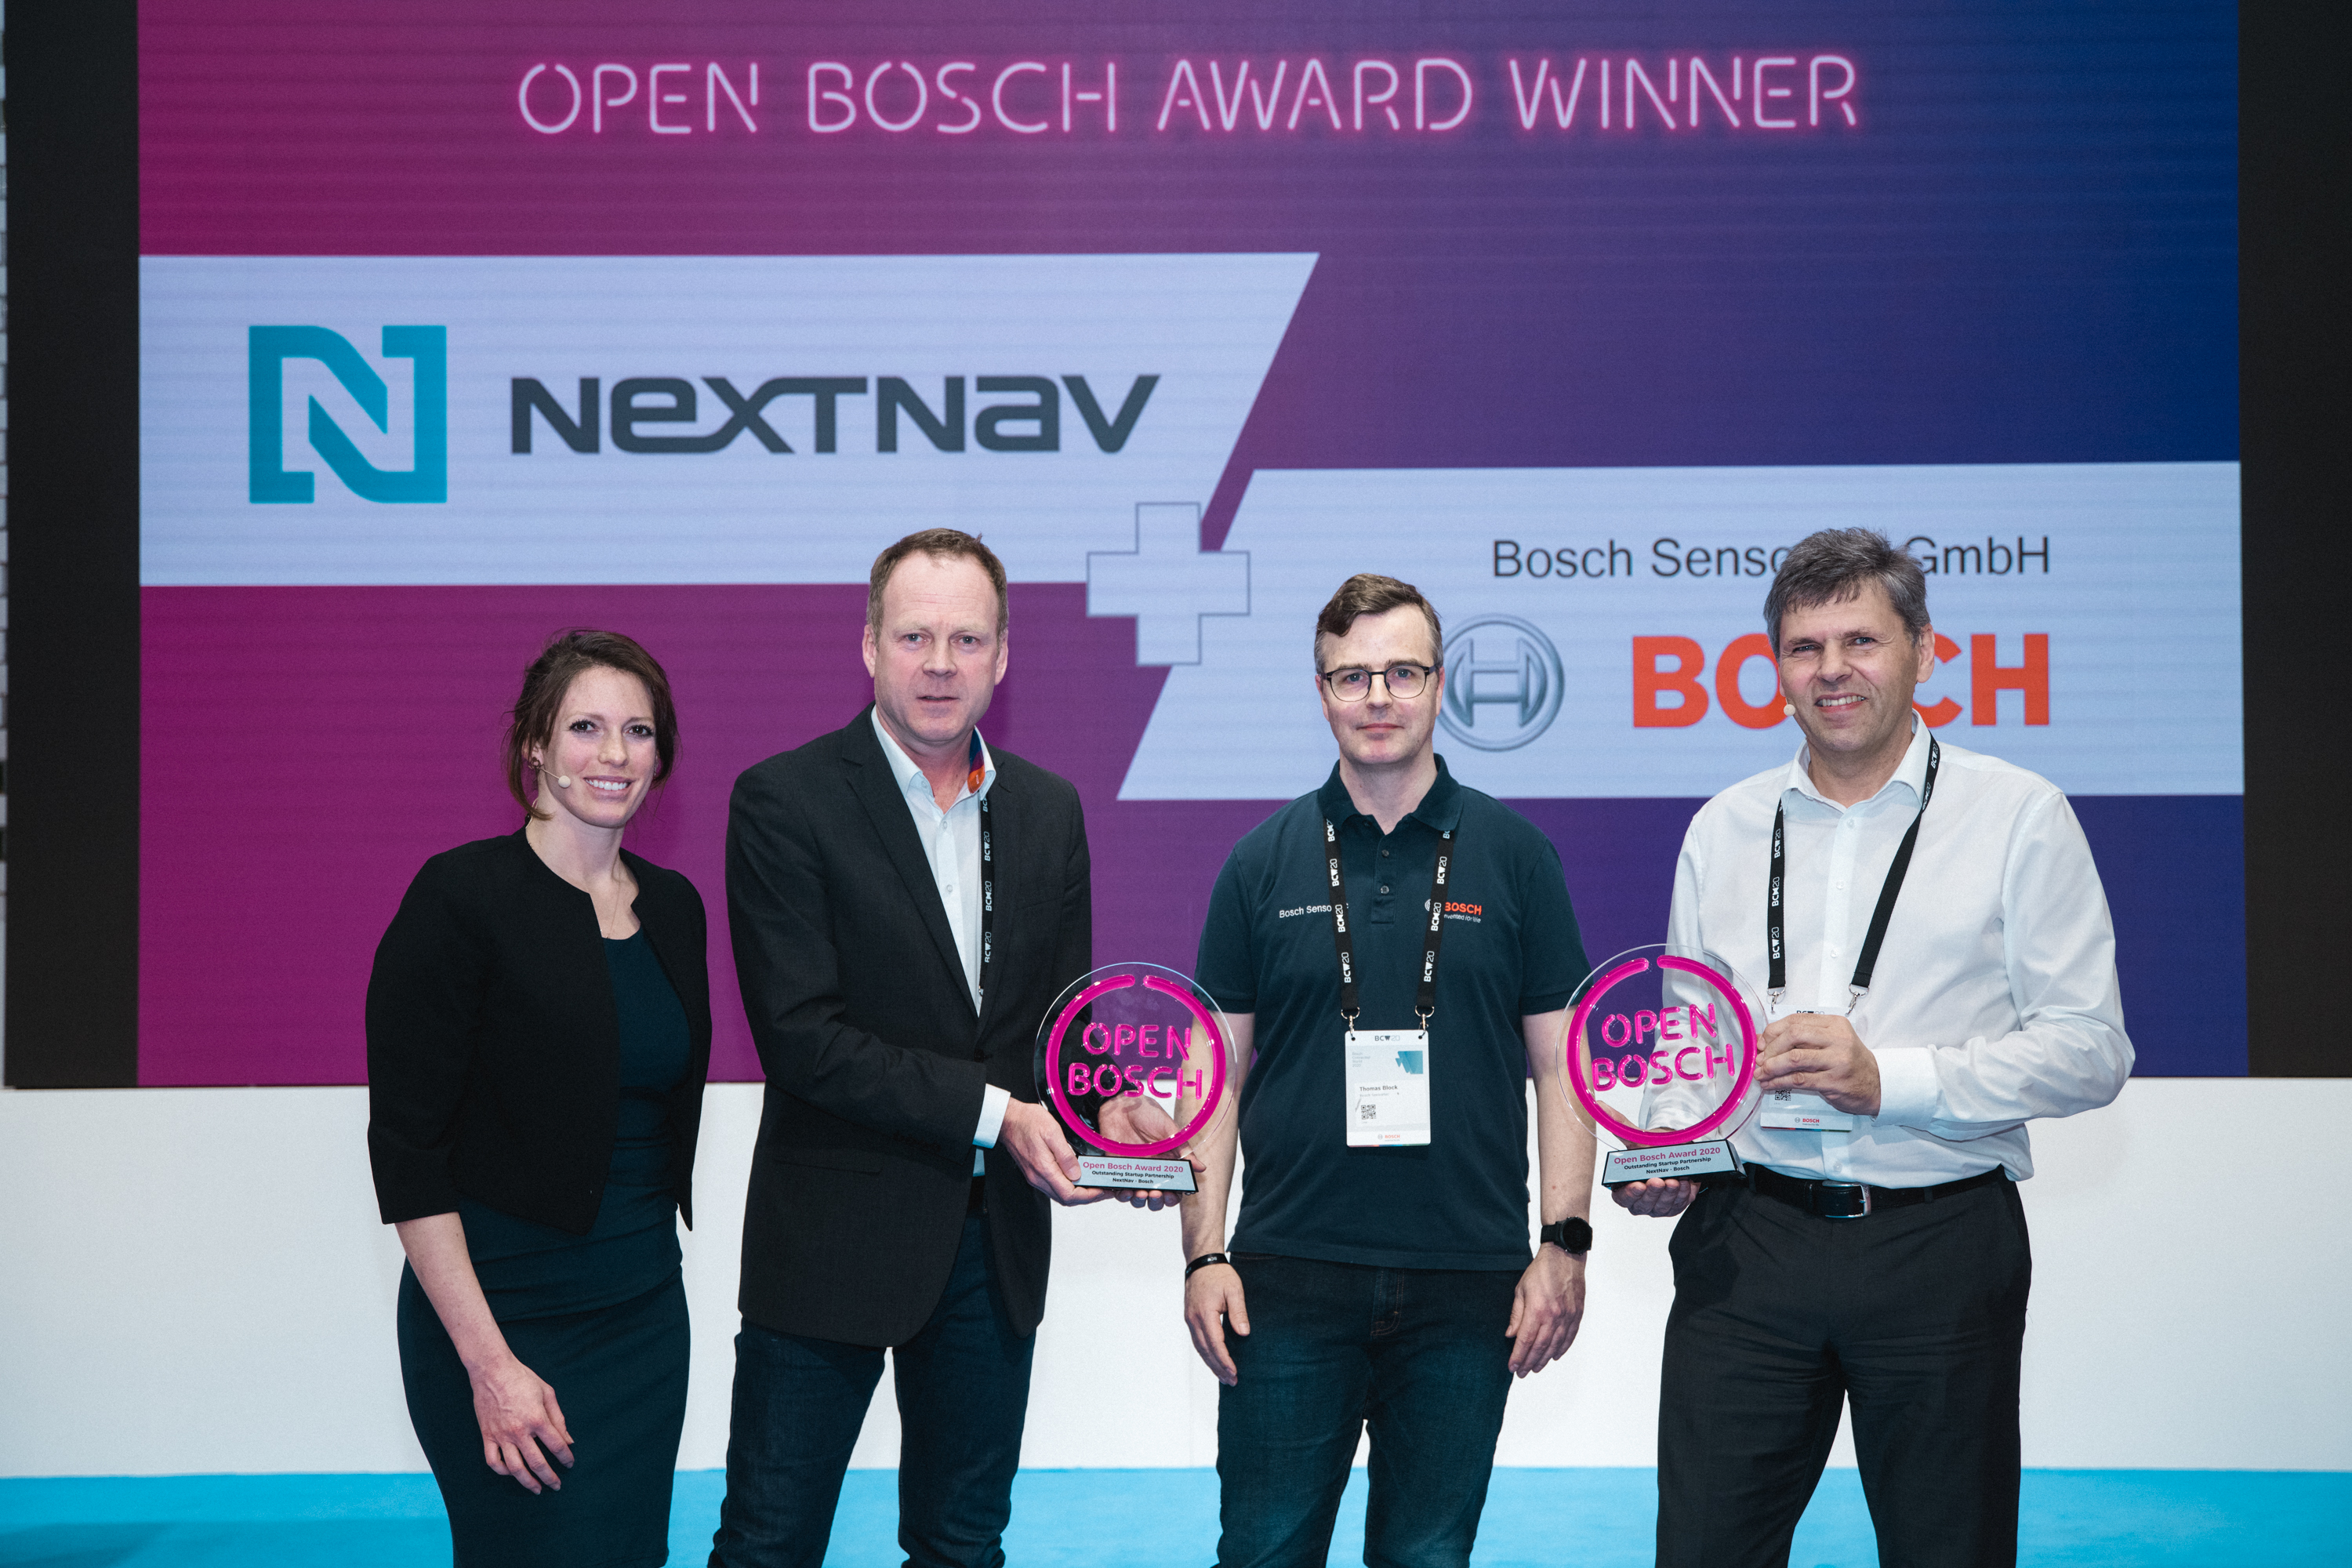 Open Bosch Award 2020 Winner – NextNav and Bosch Sensortec